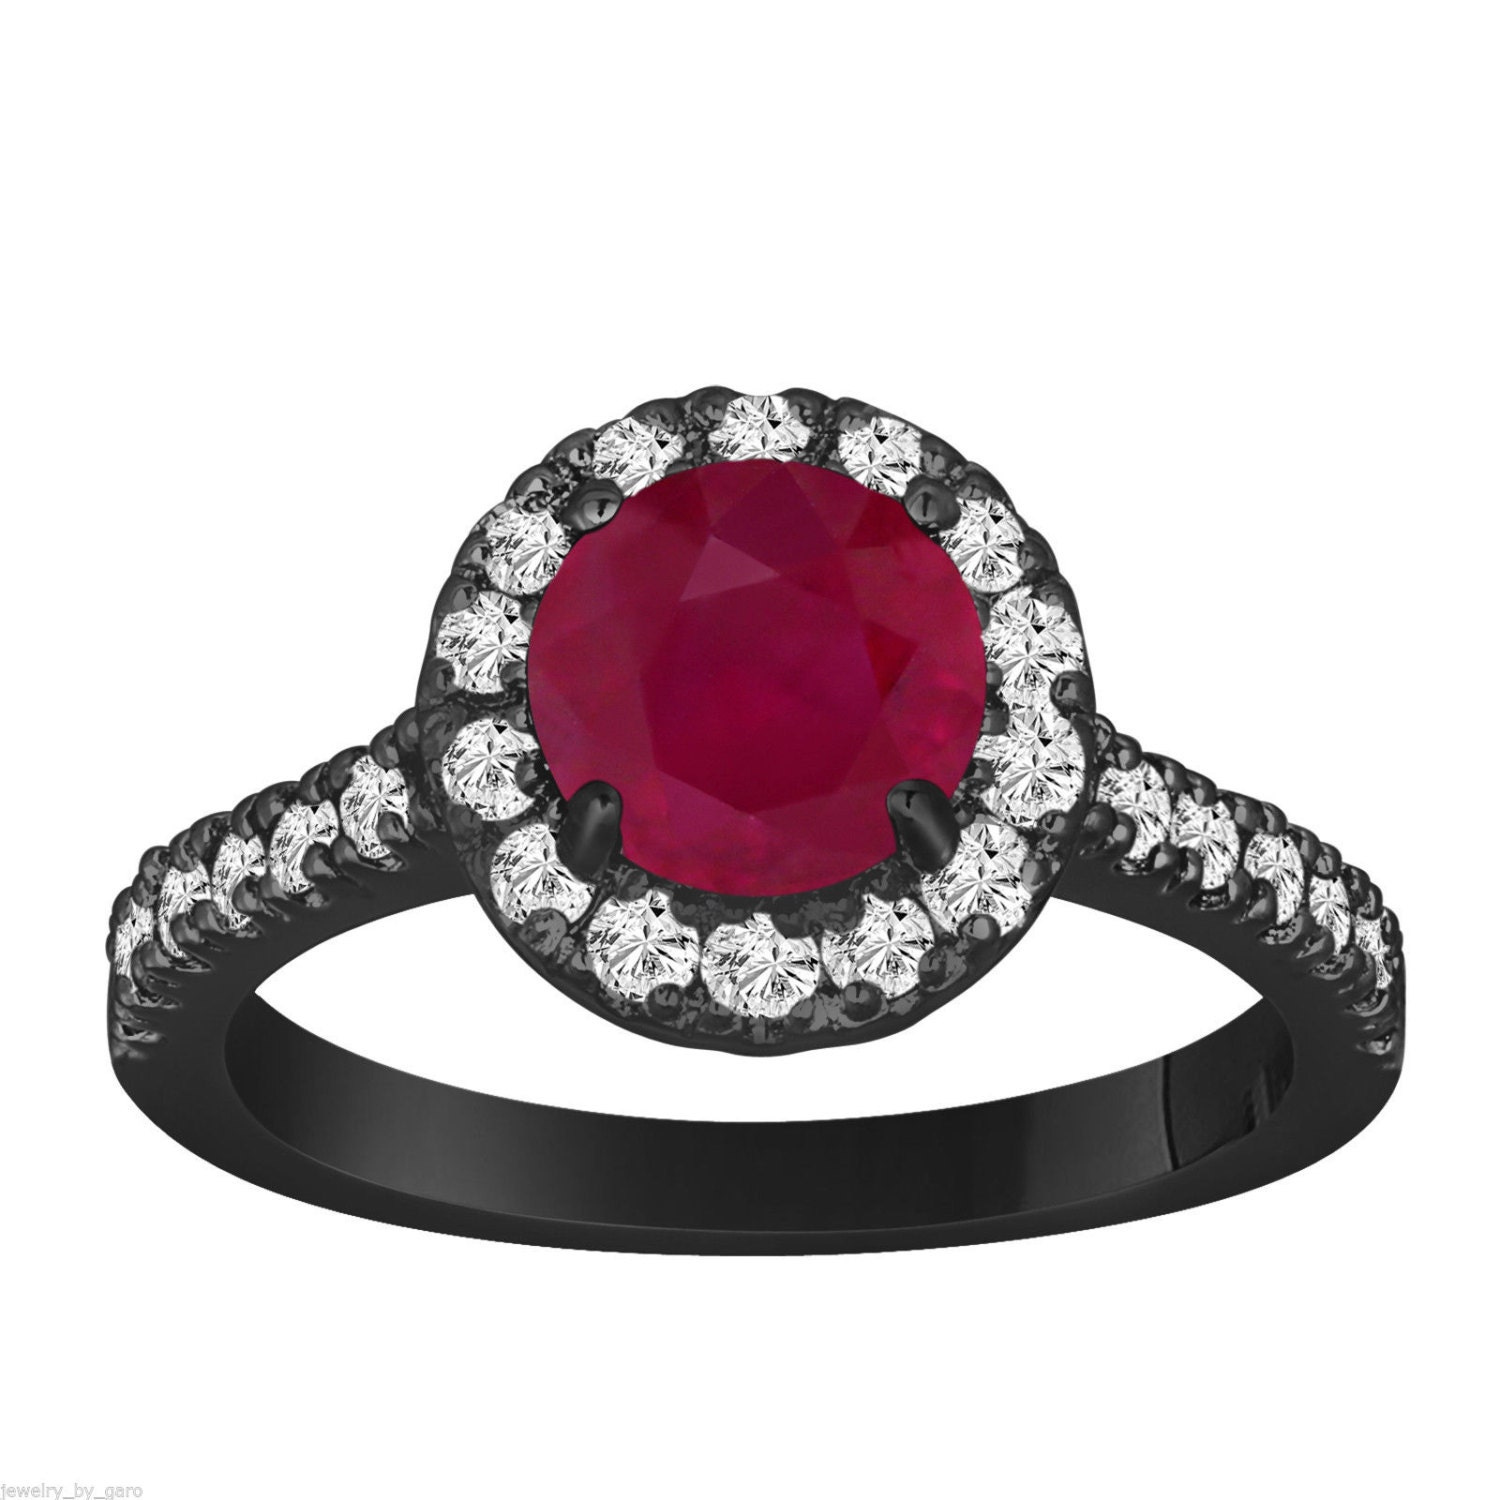 Ruby & Diamond Engagement Ring 1 65 Carat Vintage Style 14K